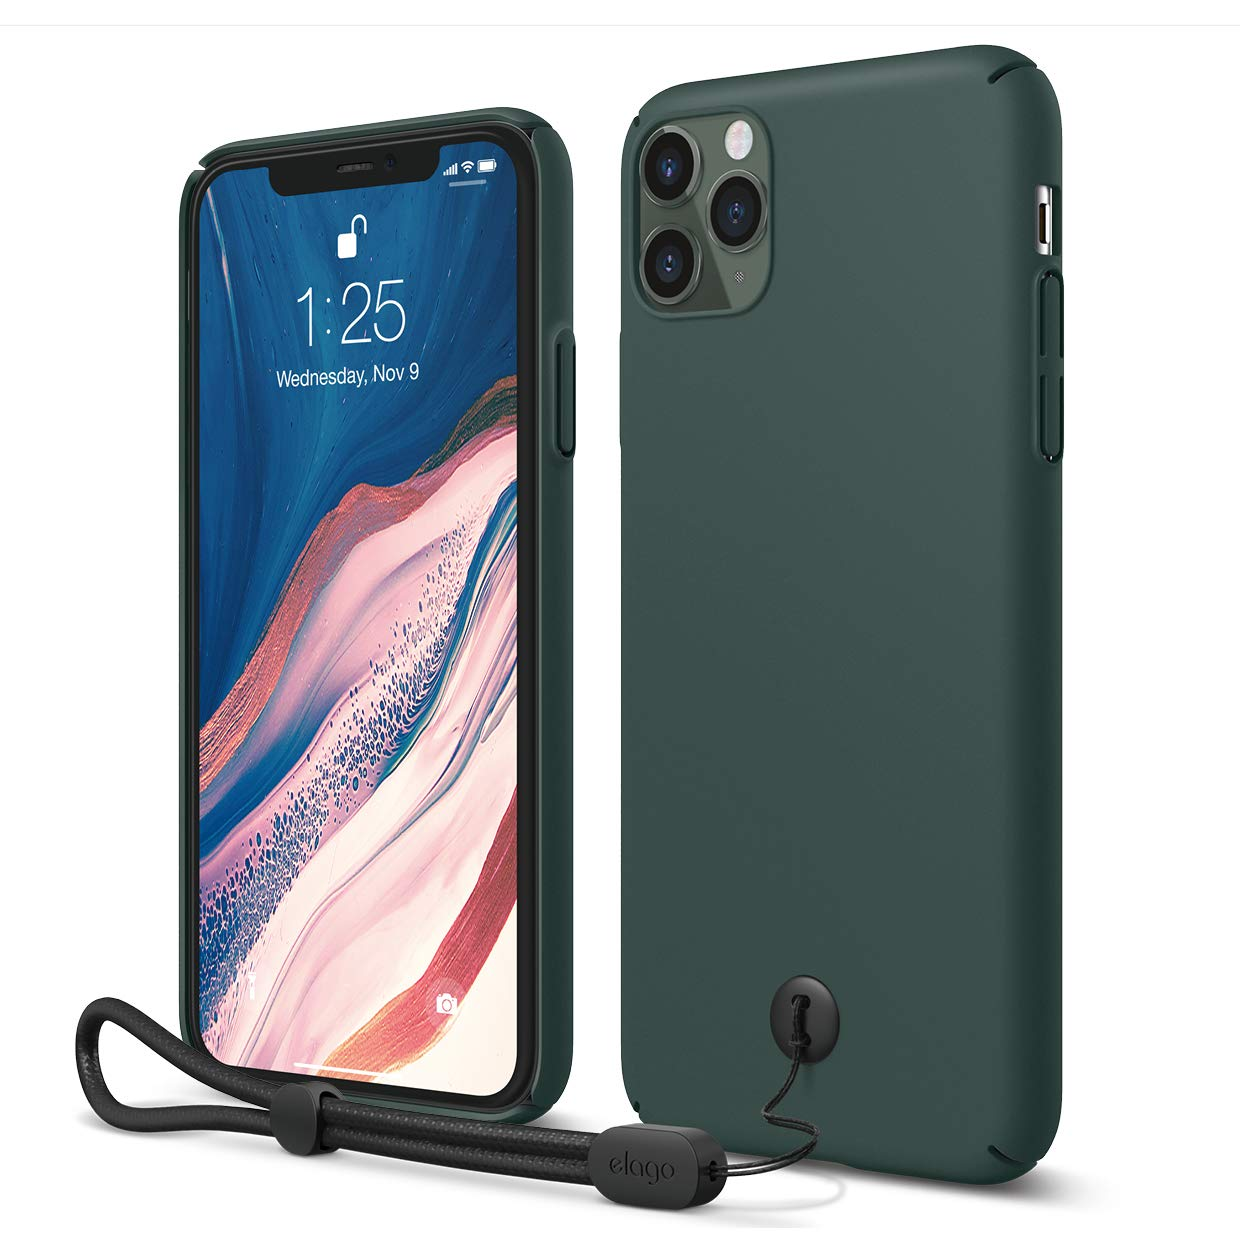 """elago iPhone 11 Pro Max Slim Fit Strap Case 6.5""""  Midnight Green  - Slim, Light, Simple Design, Matte Coating, Anti-Slip, Raised Lip, Attachable Strap and Button, Fit Tested [Made in Korea]"""